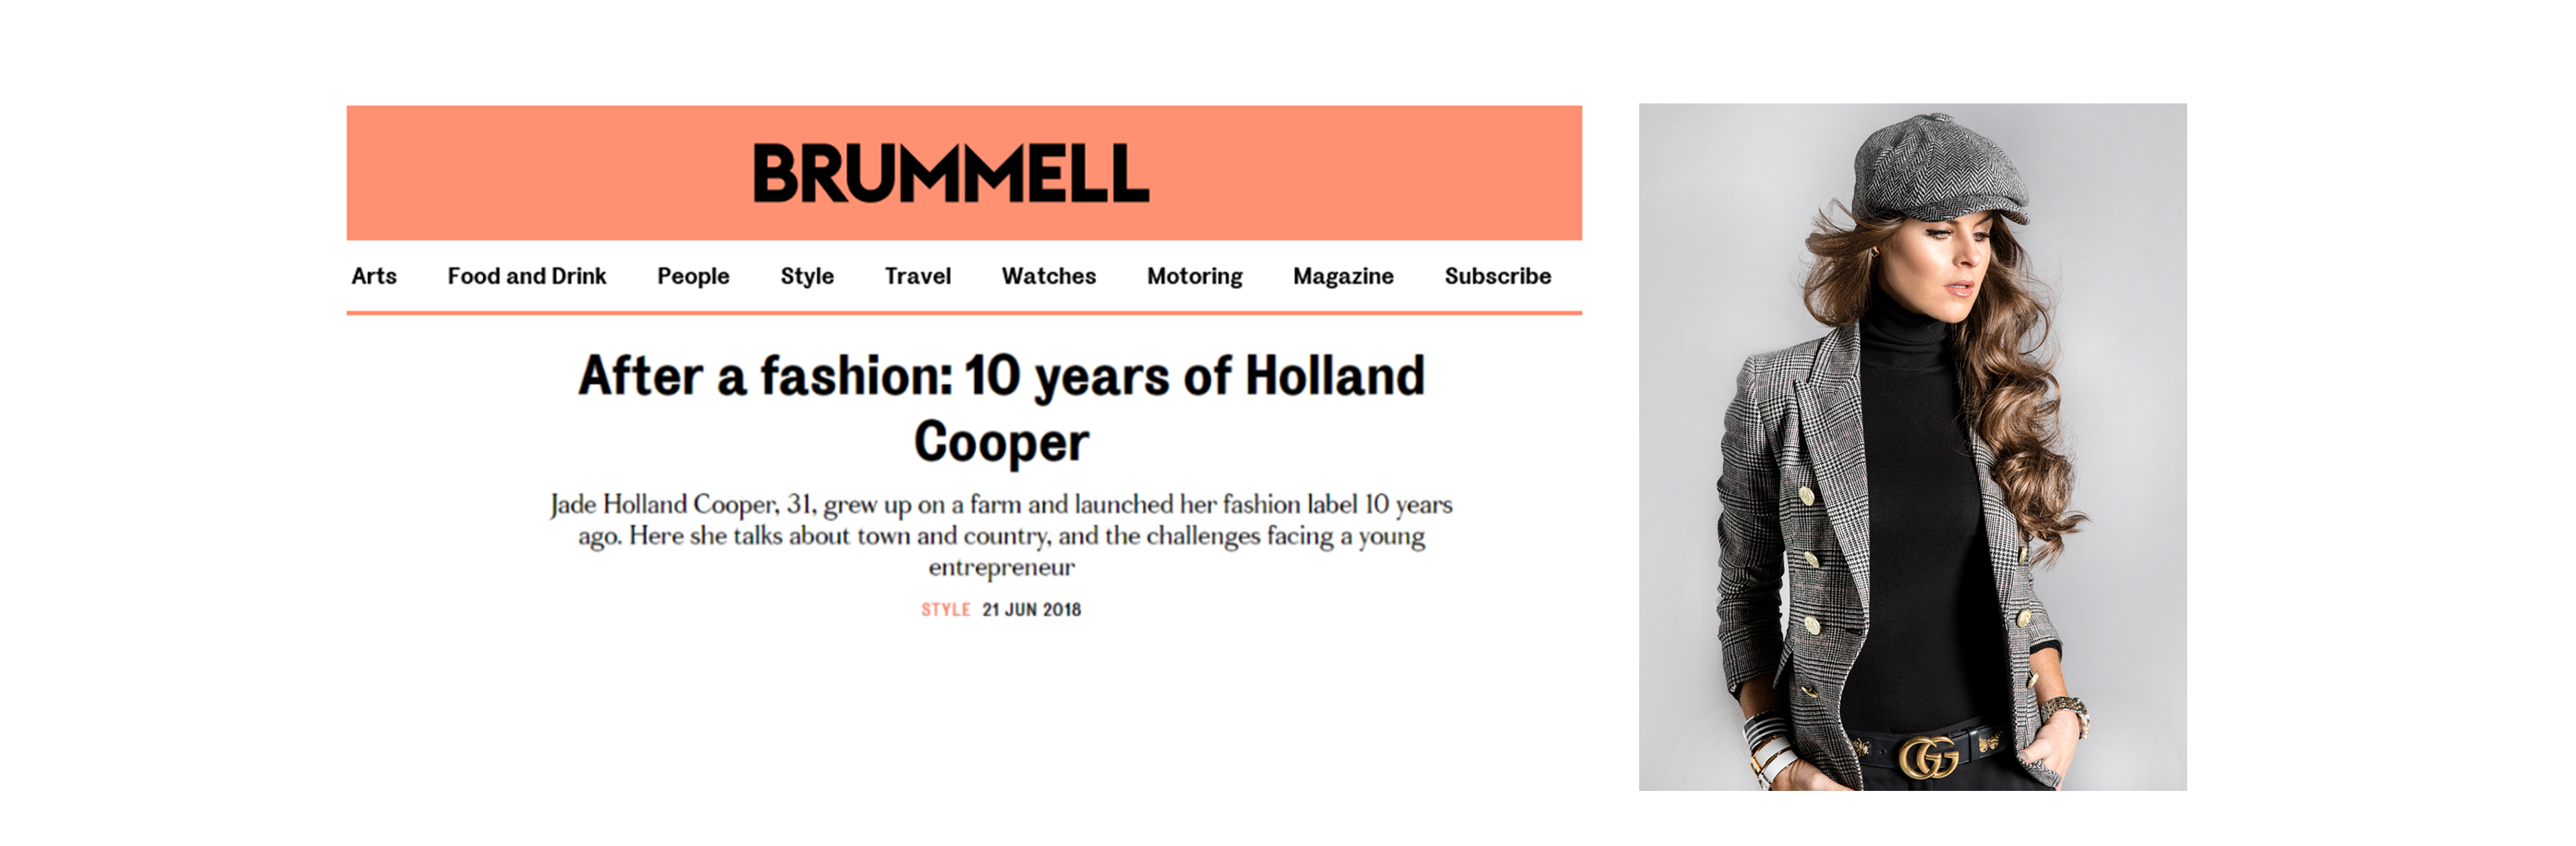 HC in Brummel Magazine